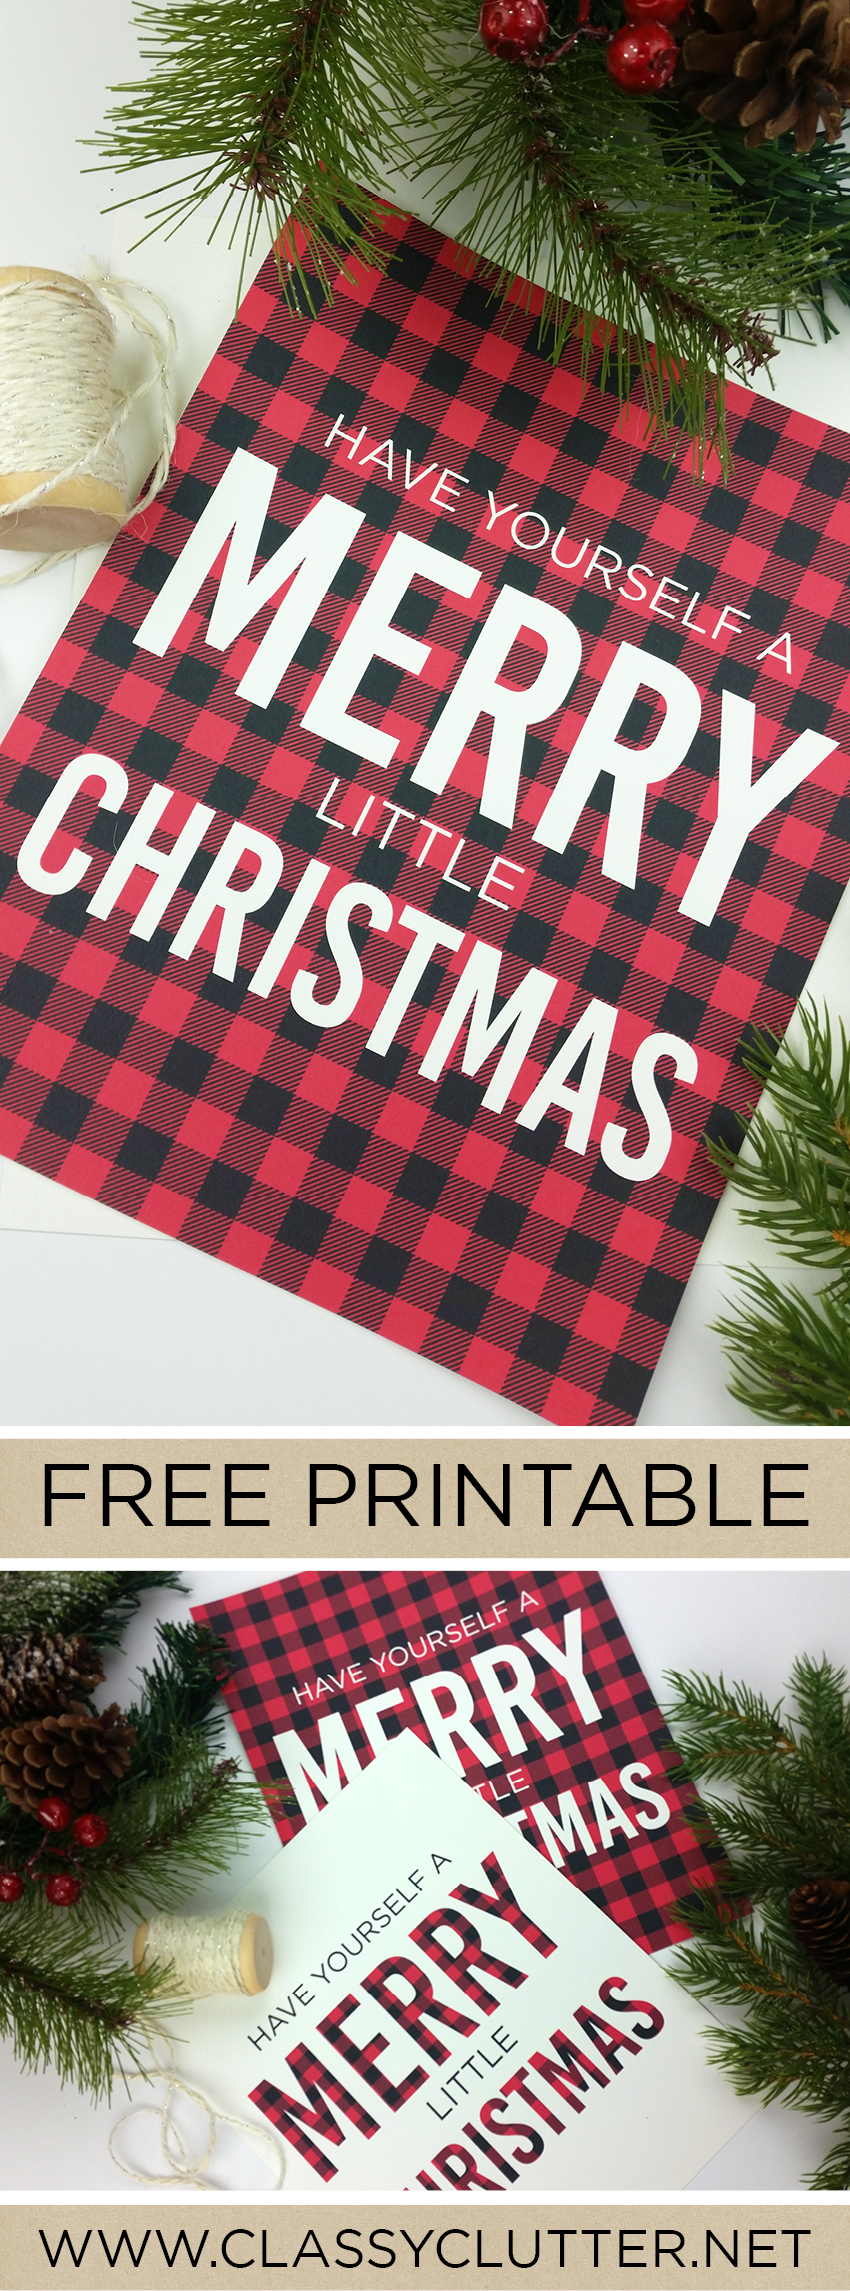 Buffalo check plaid christmas print classy clutter christmas printable by paperelli for classy clutter solutioingenieria Gallery